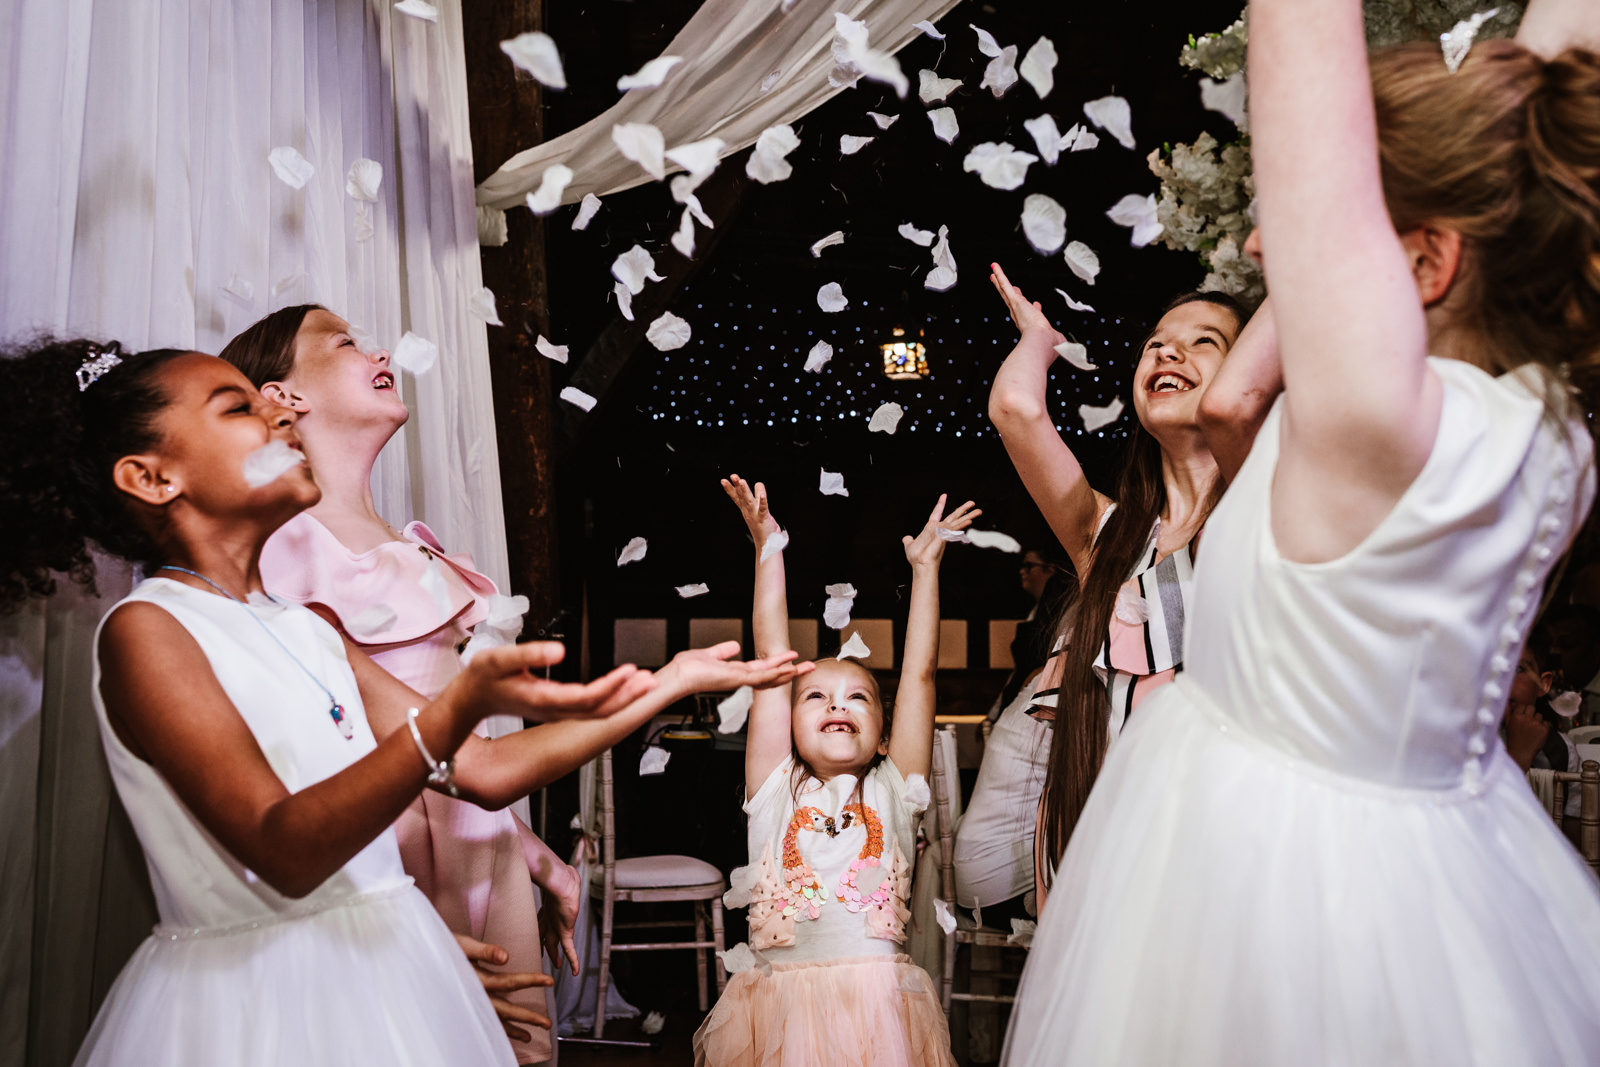 Girls throwing confetti